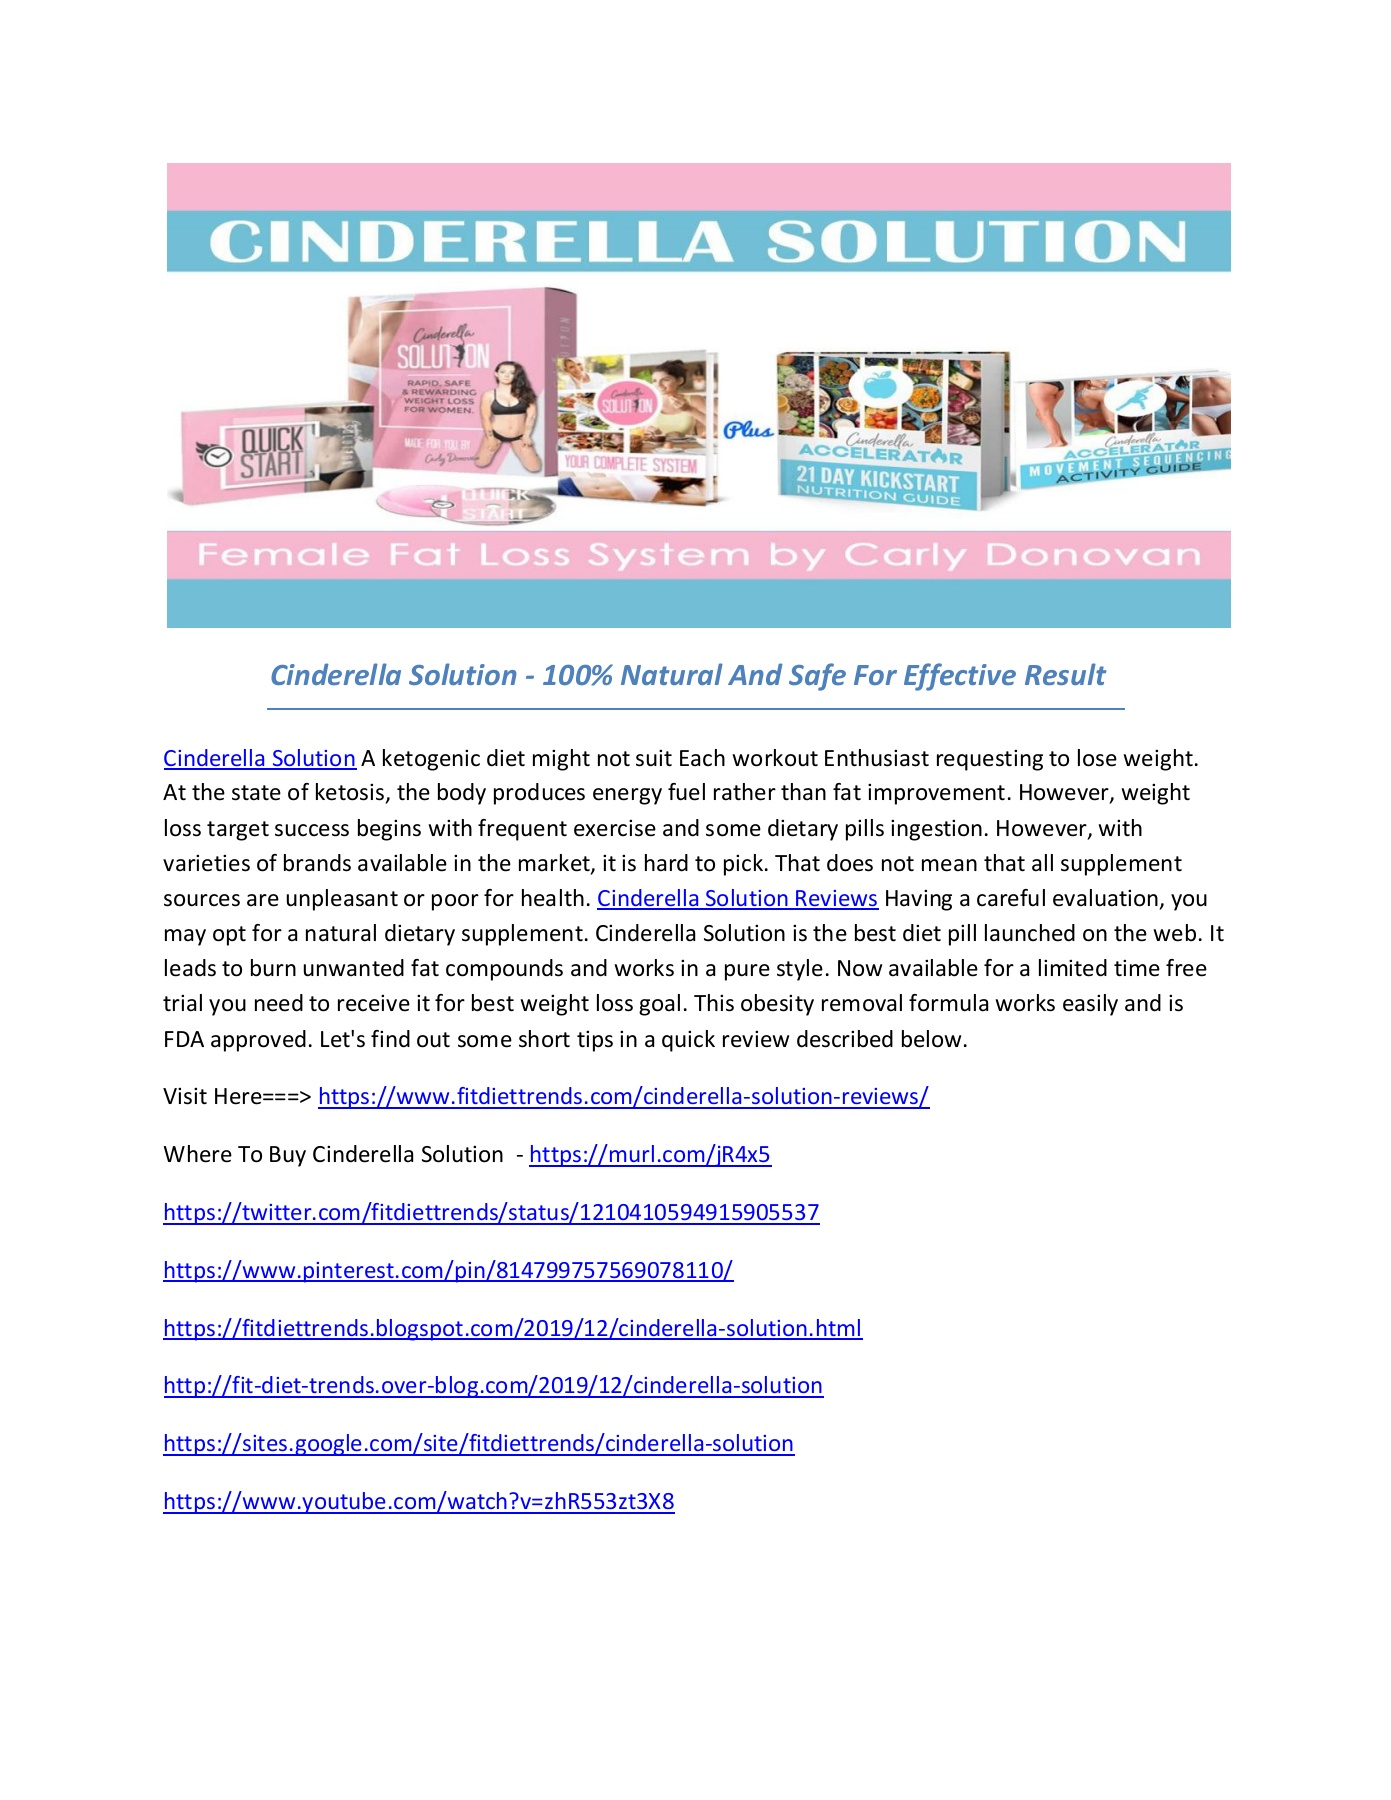 Buy Diet Cinderella Solution  On Finance With Bad Credit